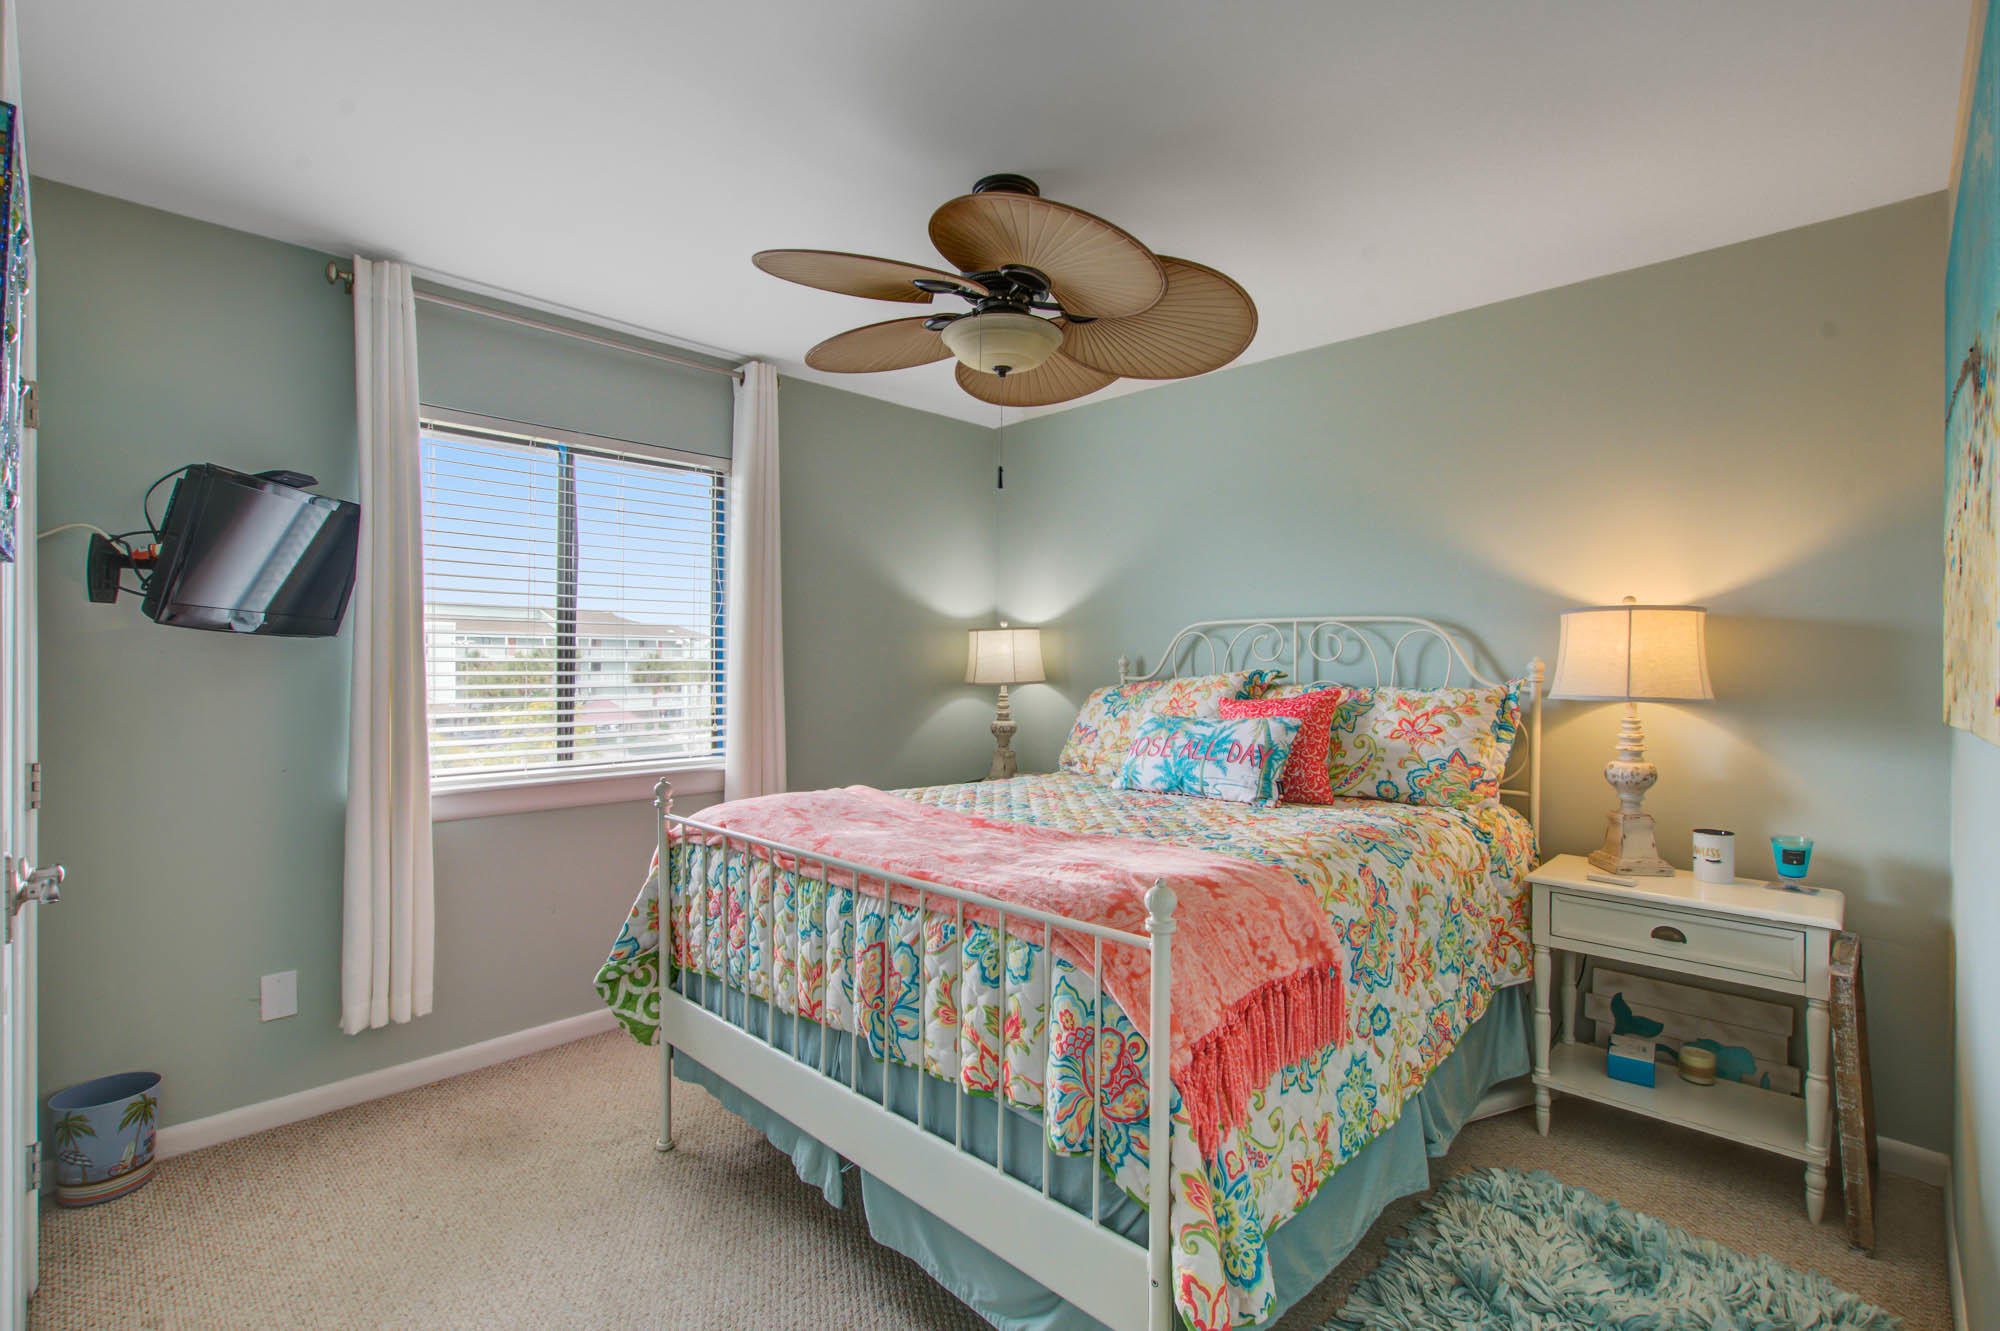 Mariners Cay Homes For Sale - 56 Mariners Cay, Folly Beach, SC - 31